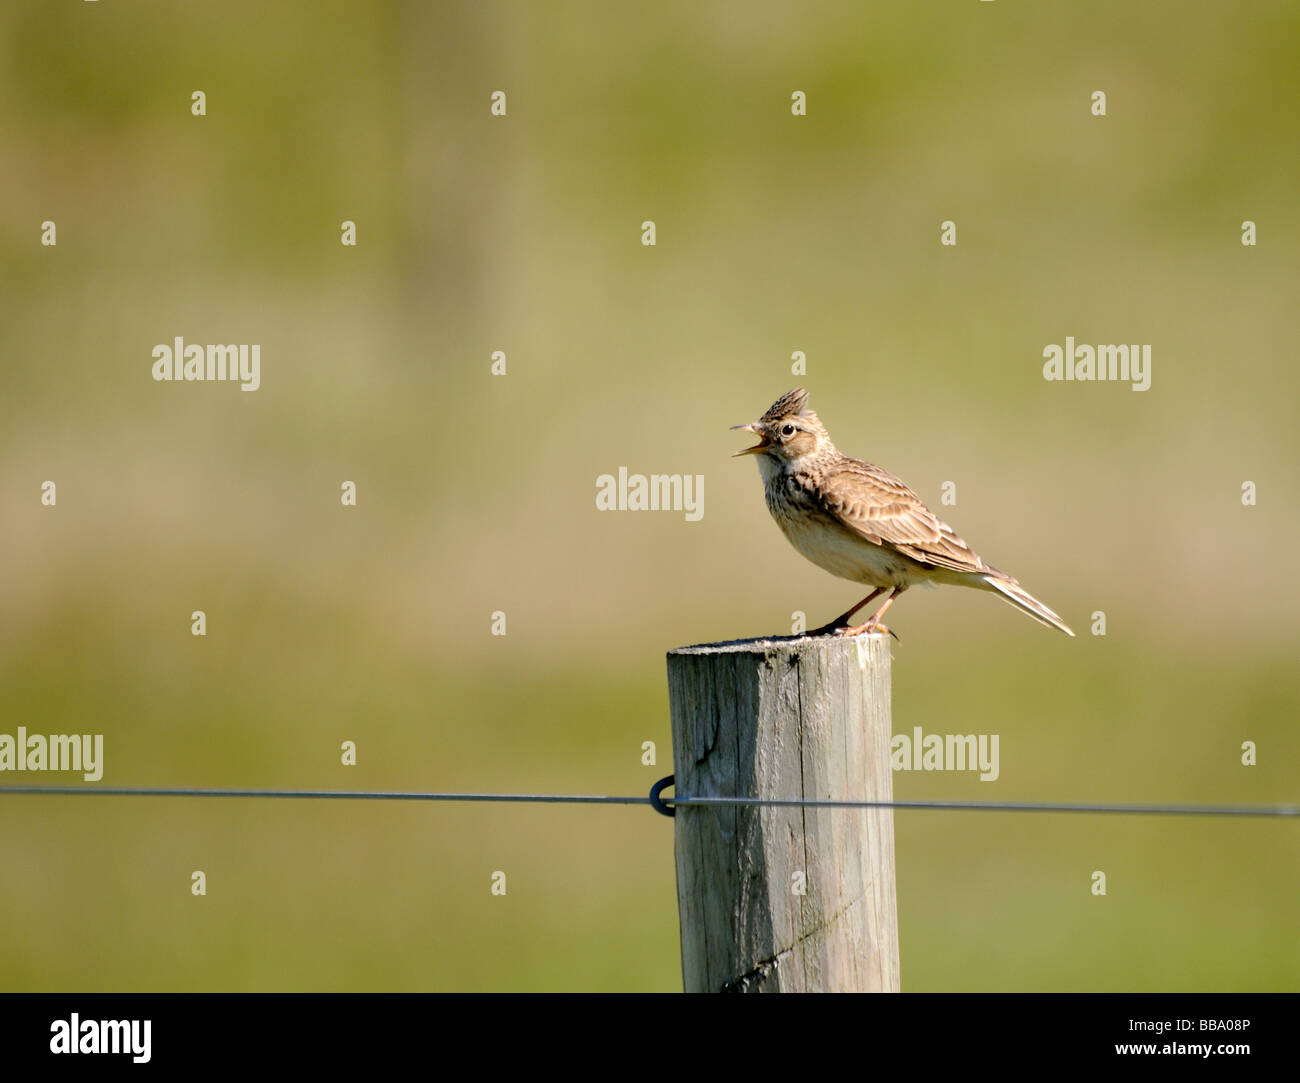 A skylark (Alauda arvensis) stands singing on a fence post. - Stock Image